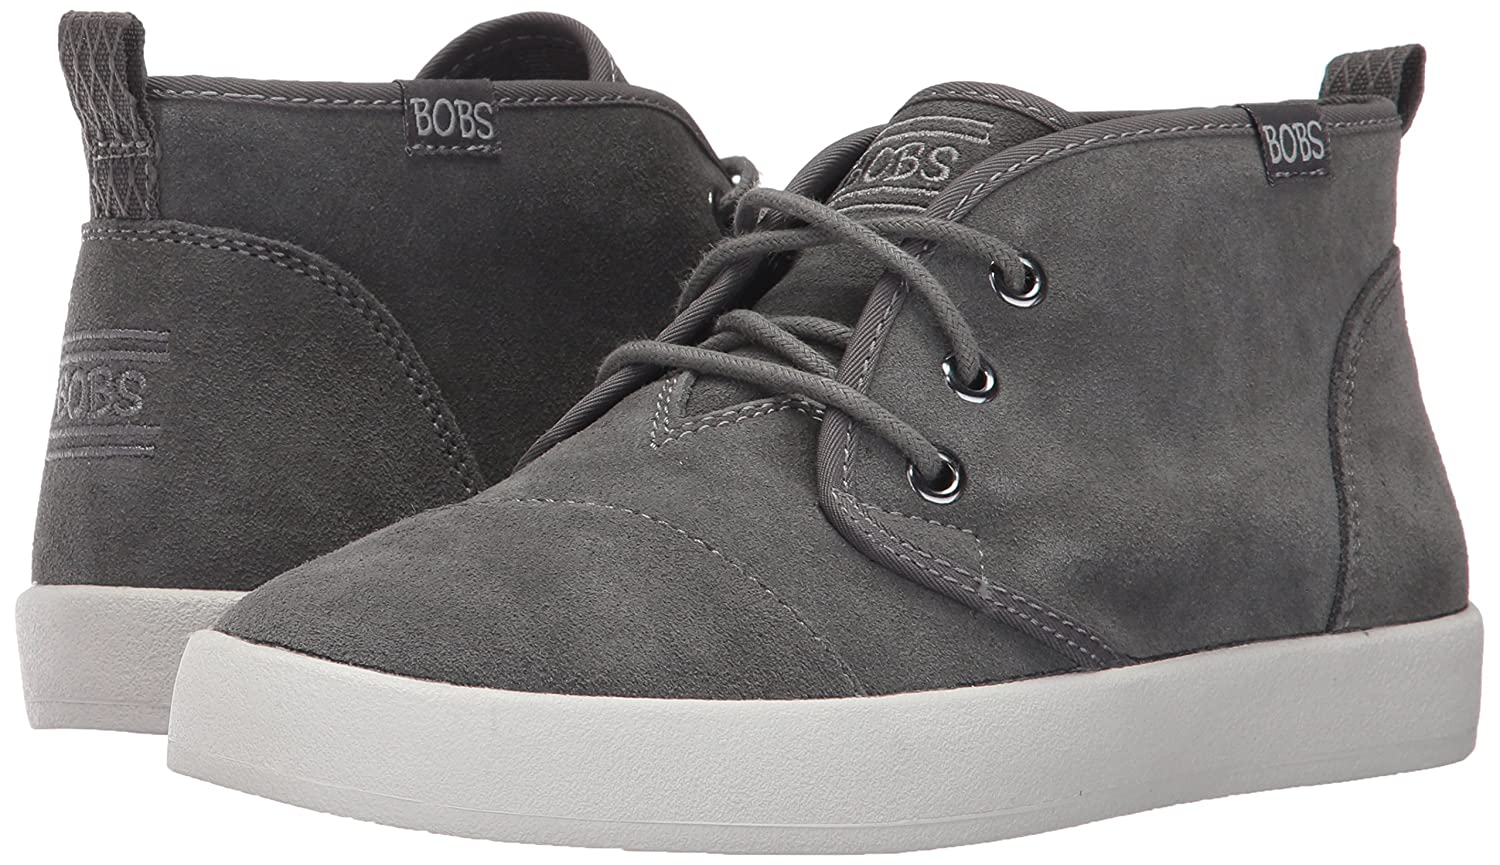 Skechers BOBS from Women's Bobs B-Loved-Casual B(M) Party Sneaker B071FN22NB 9 B(M) B-Loved-Casual US|Charcoal 3b24f4